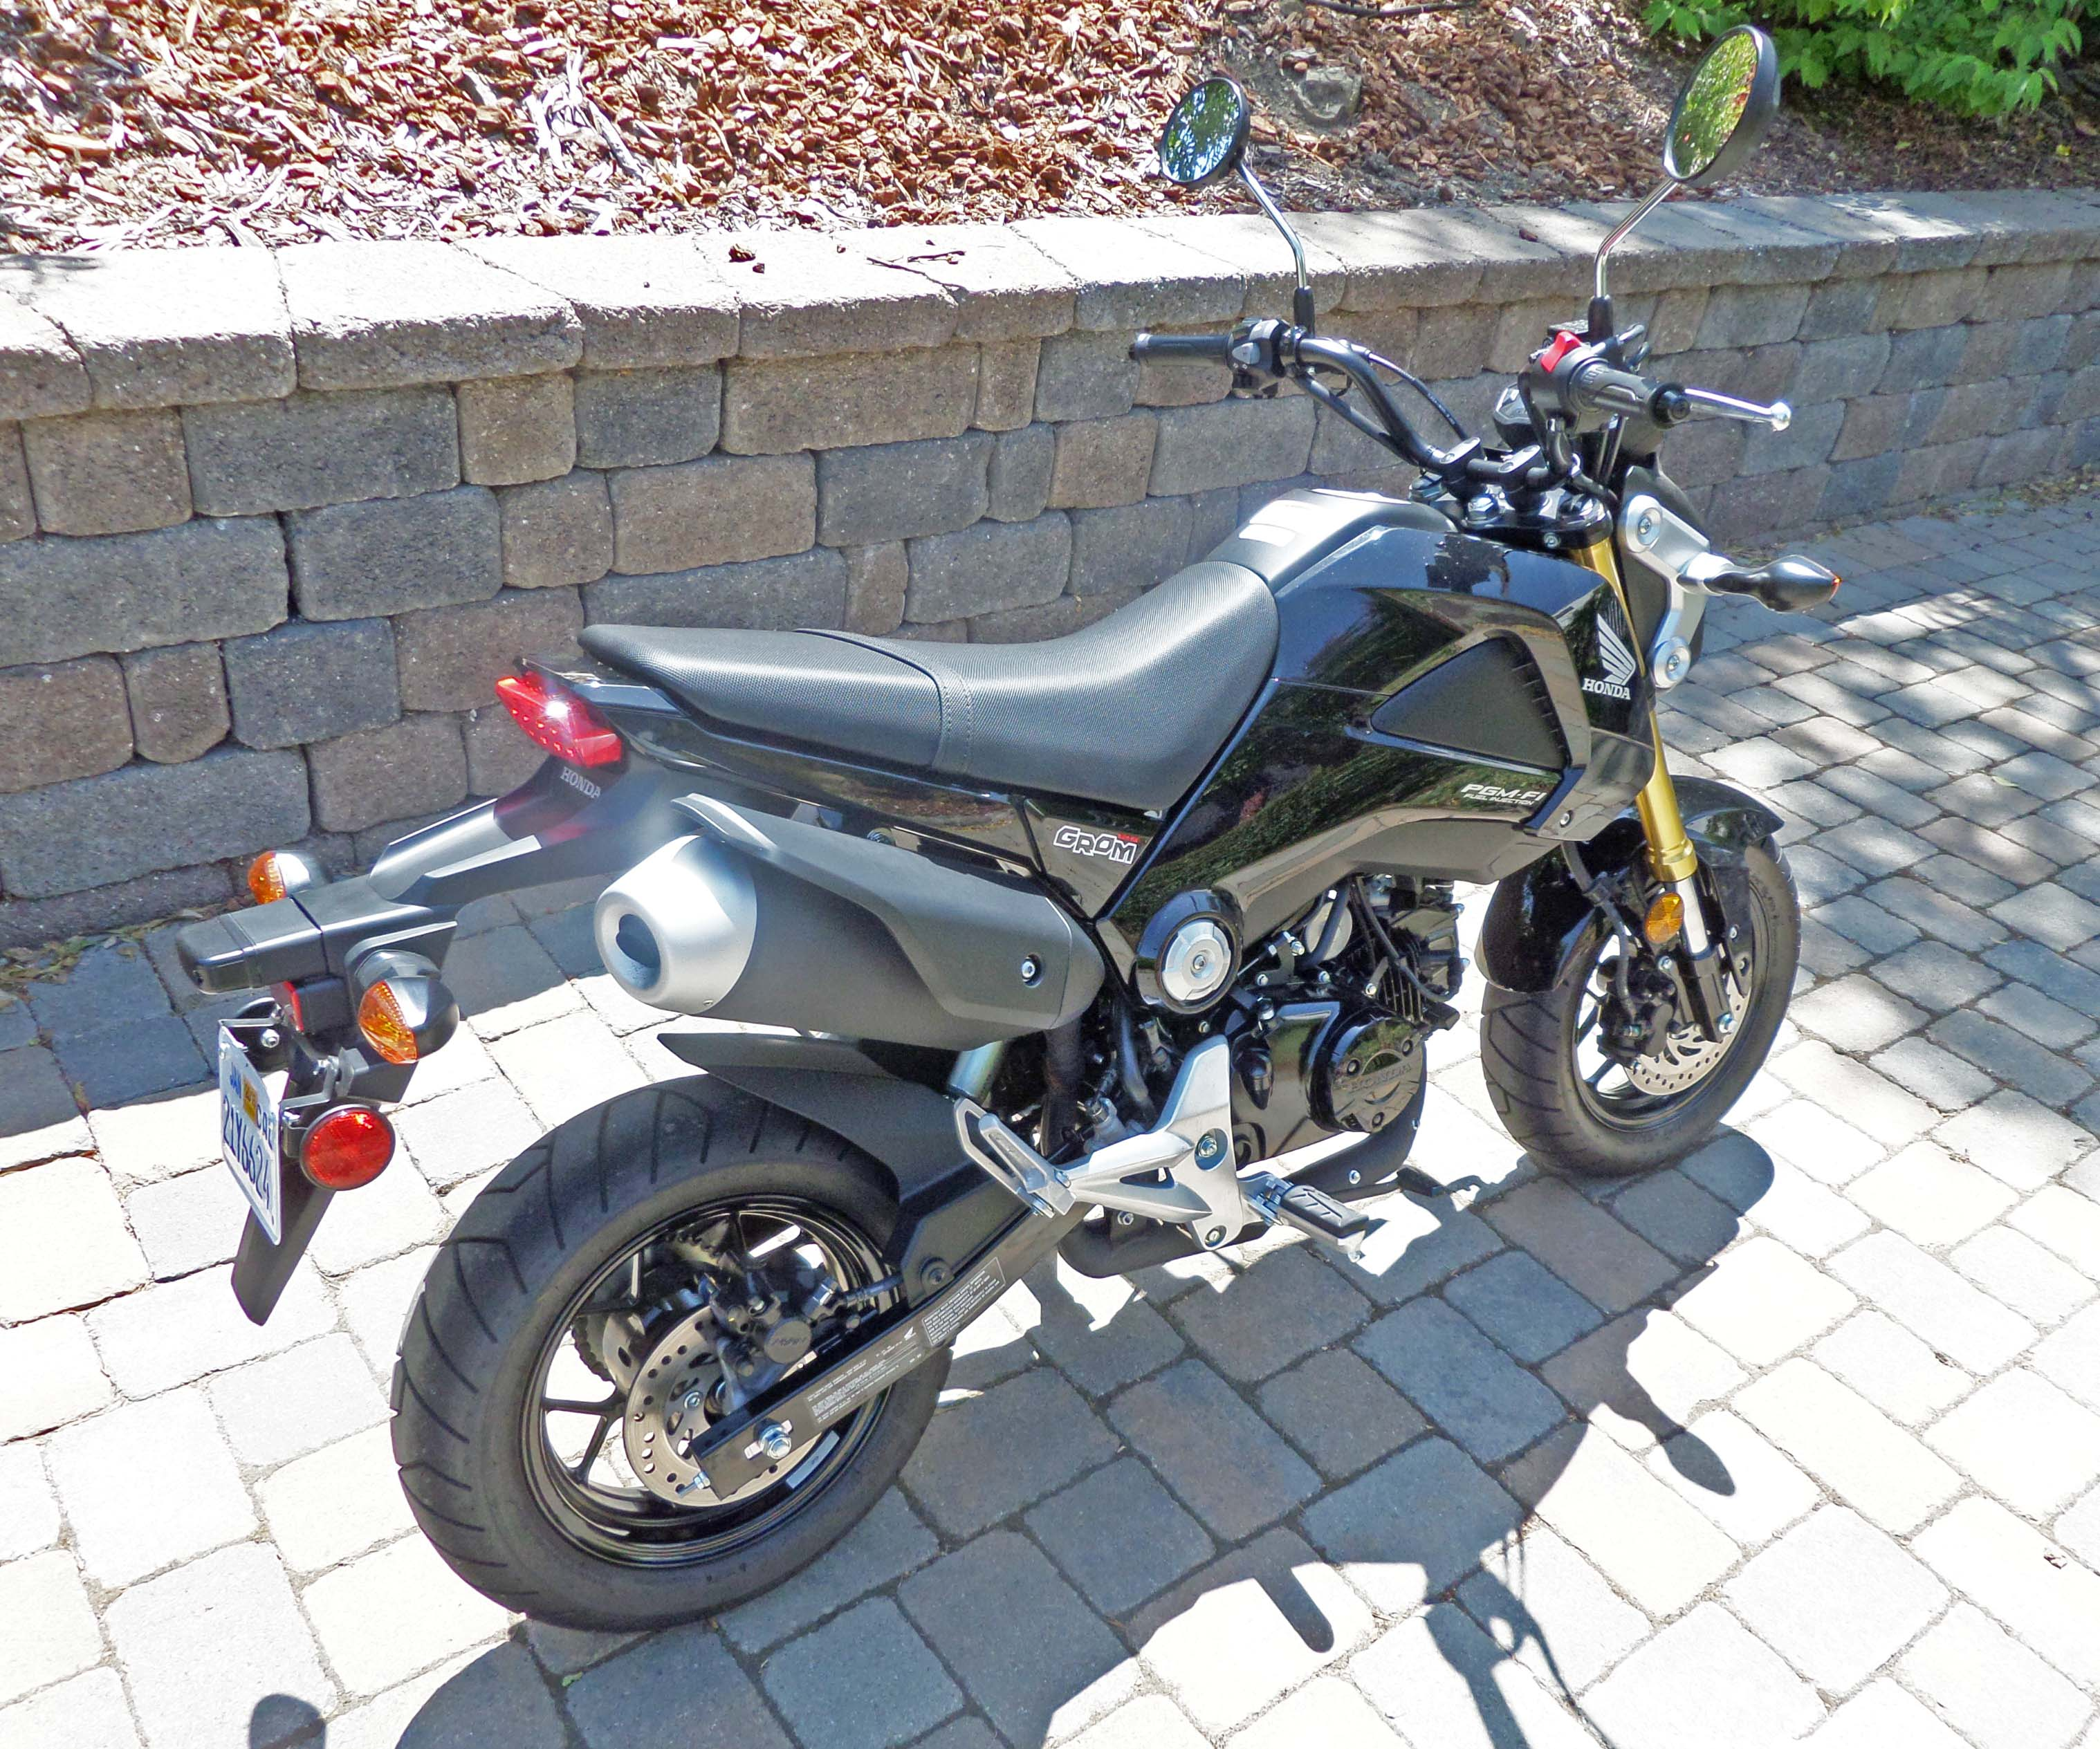 2014 Full Custom Honda Grom Street Fighter |Honda Grom Size